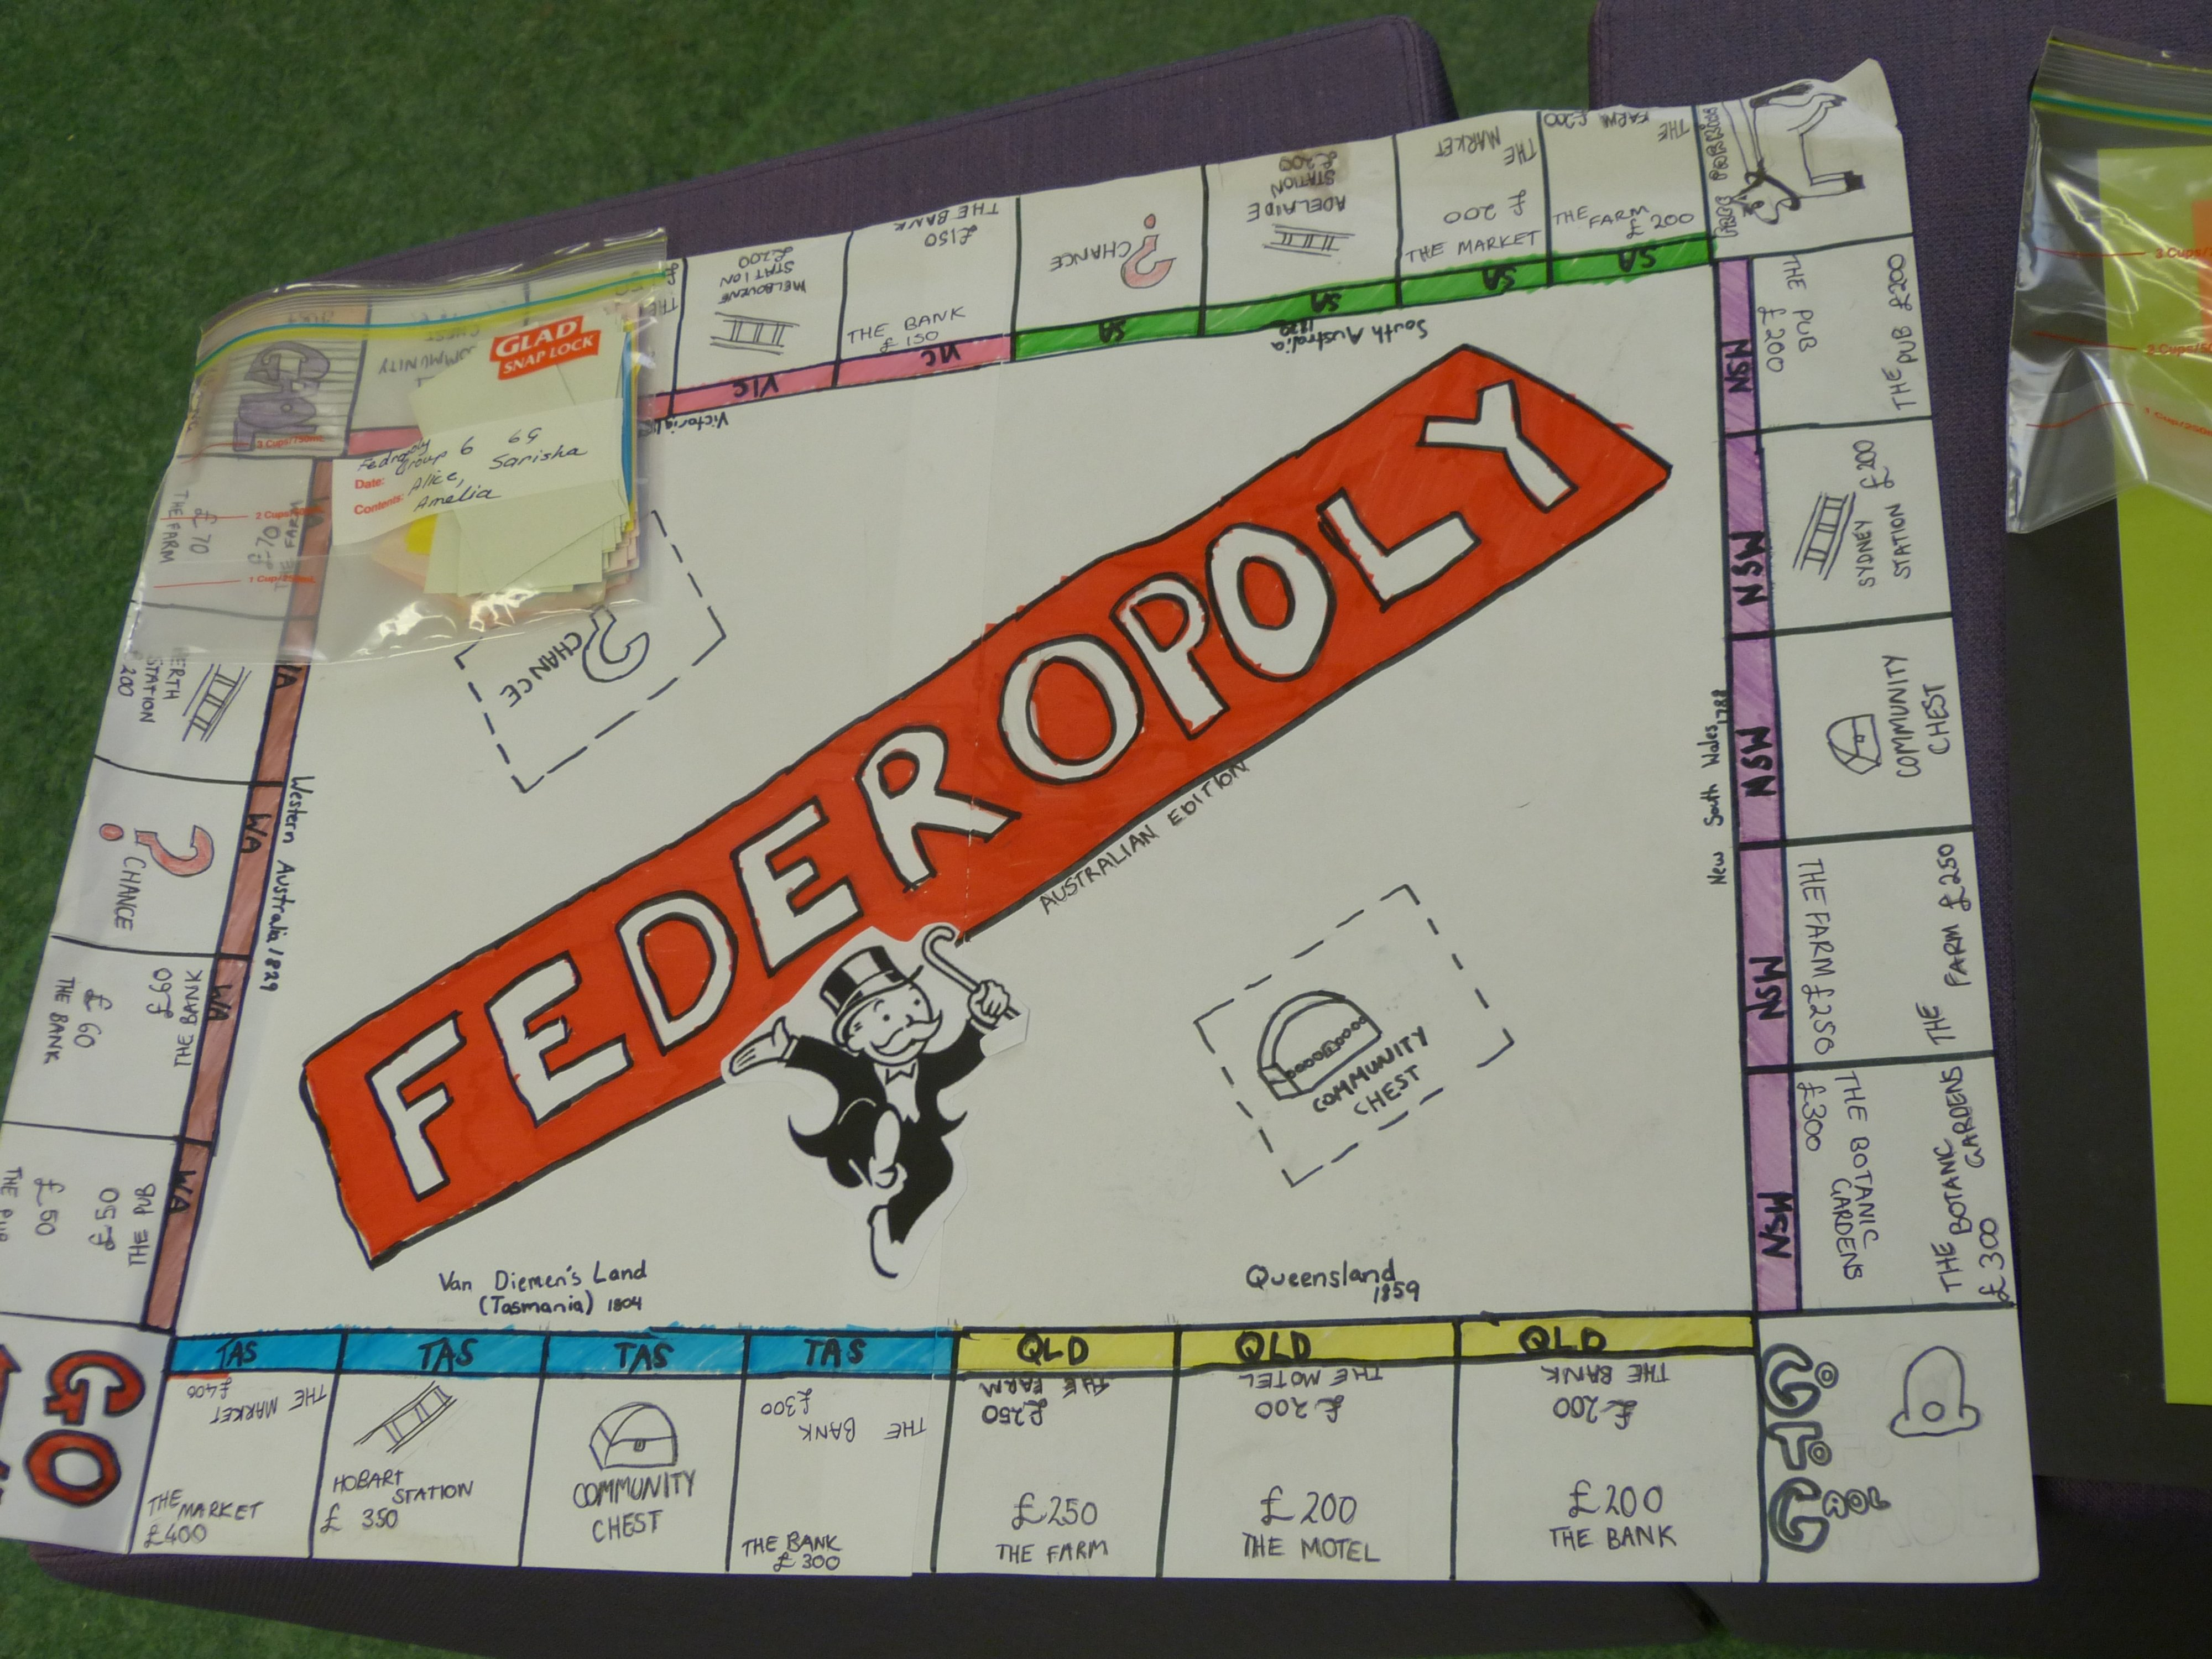 10 Famous Board Game Ideas For School Projects schools learning programs inspire federation fun and games c2b7 museum 2020